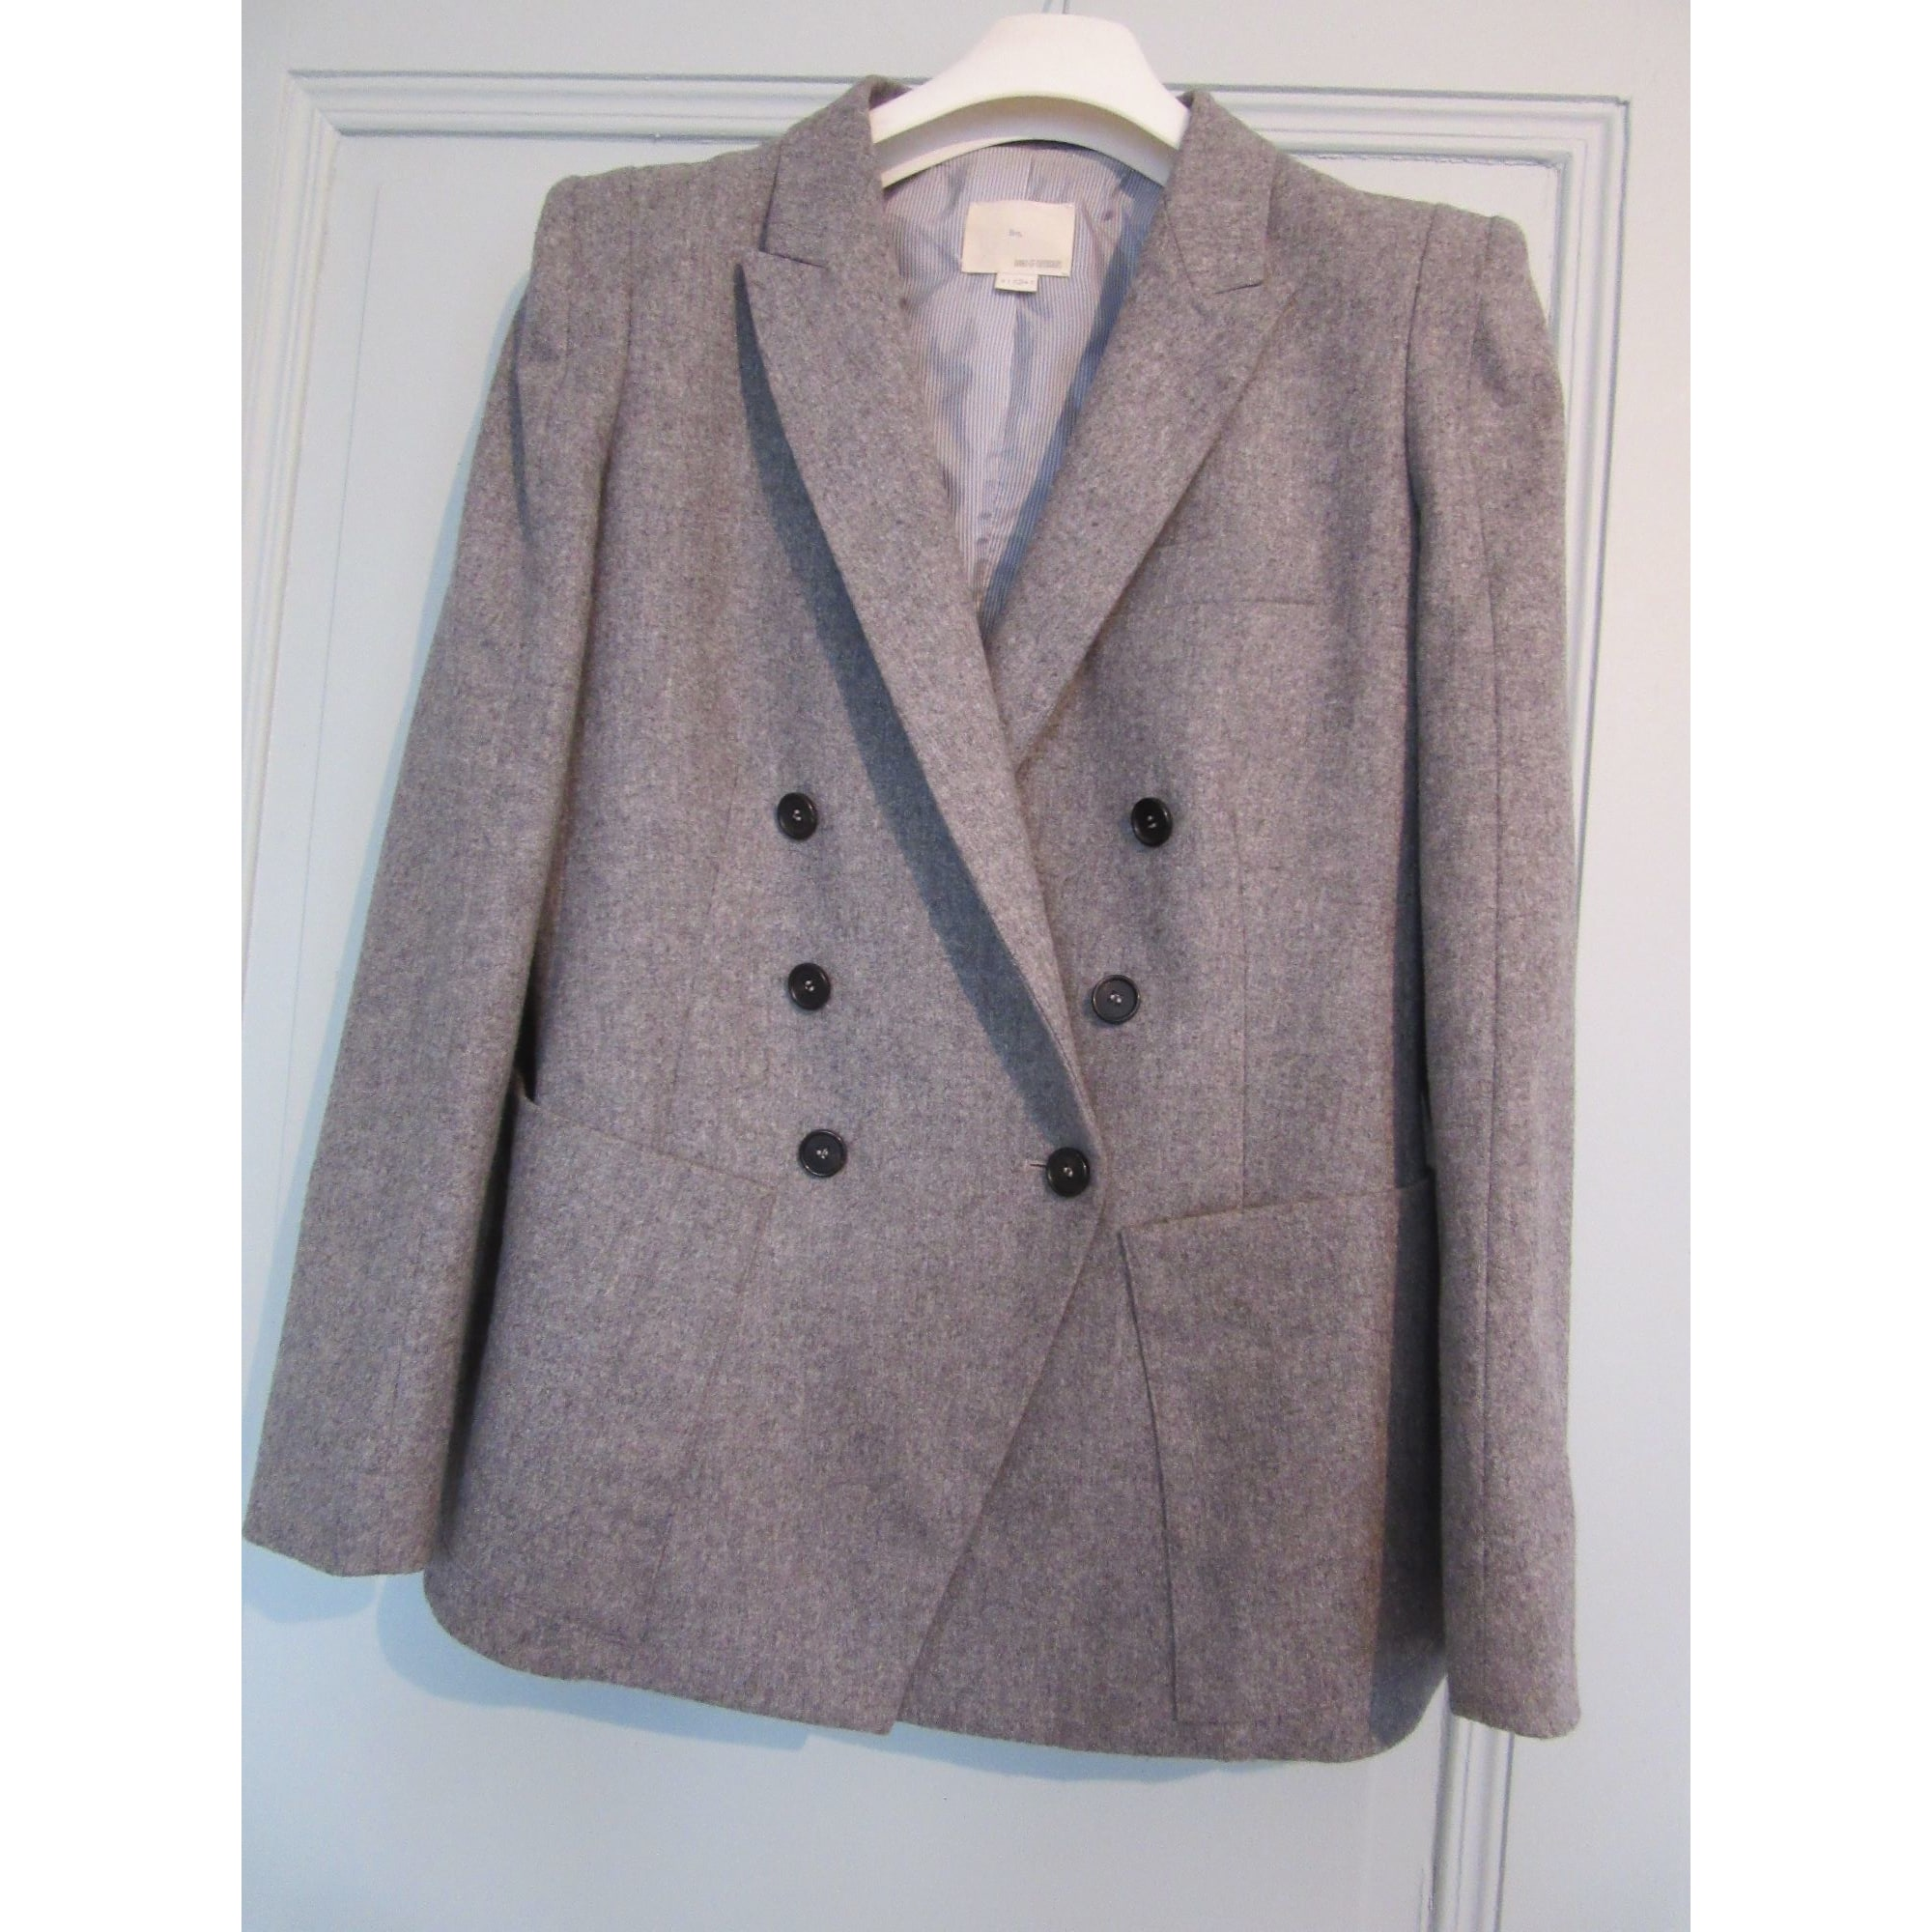 Blazer, veste tailleur BAND OF OUTSIDERS Gris, anthracite